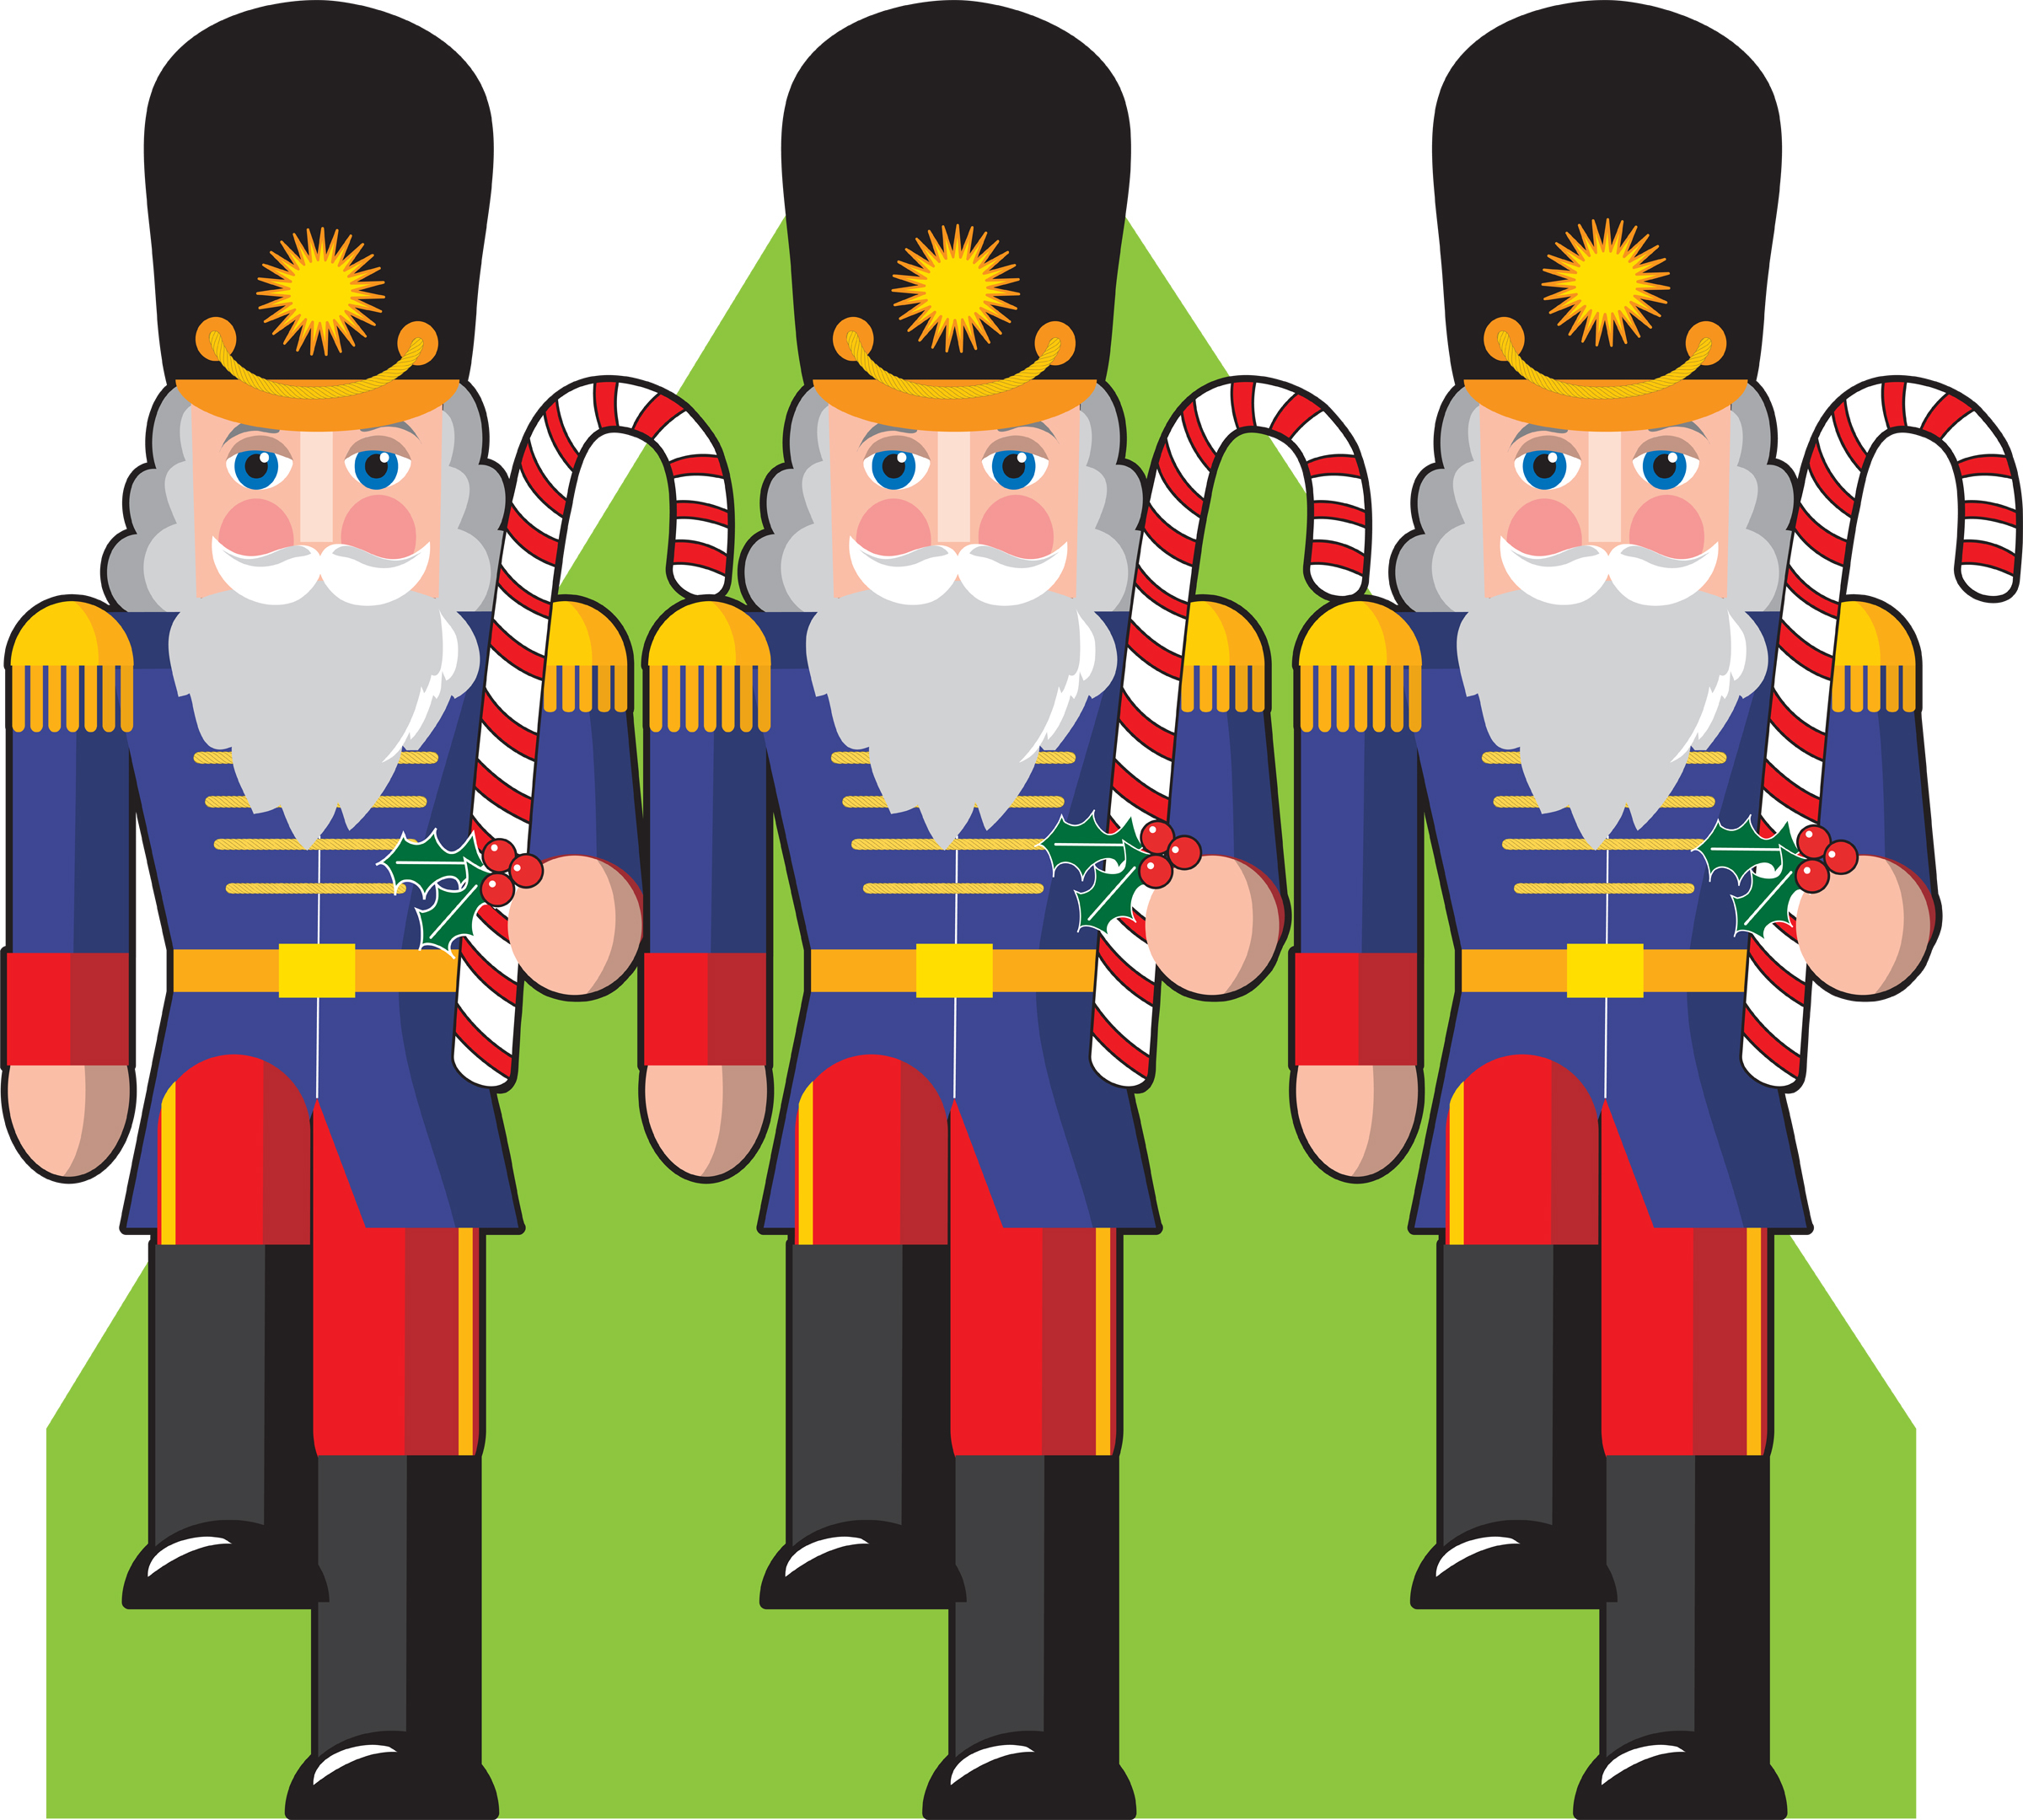 nutcrackers from iclipart.com